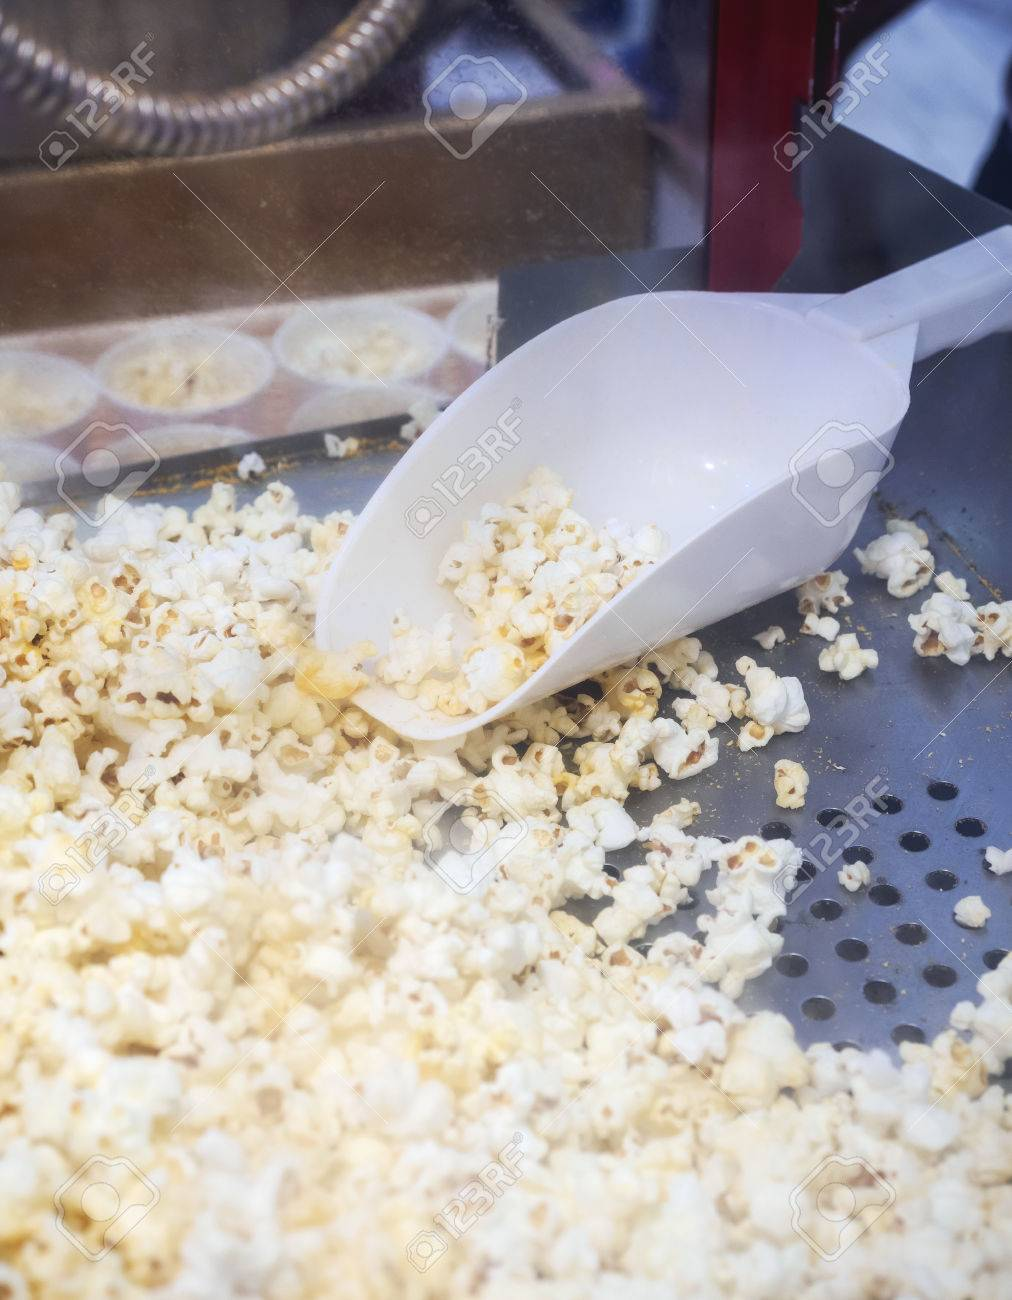 pop corn with spoon popcorn machine for sell event festival stock photo - Popcorn Machine For Sale